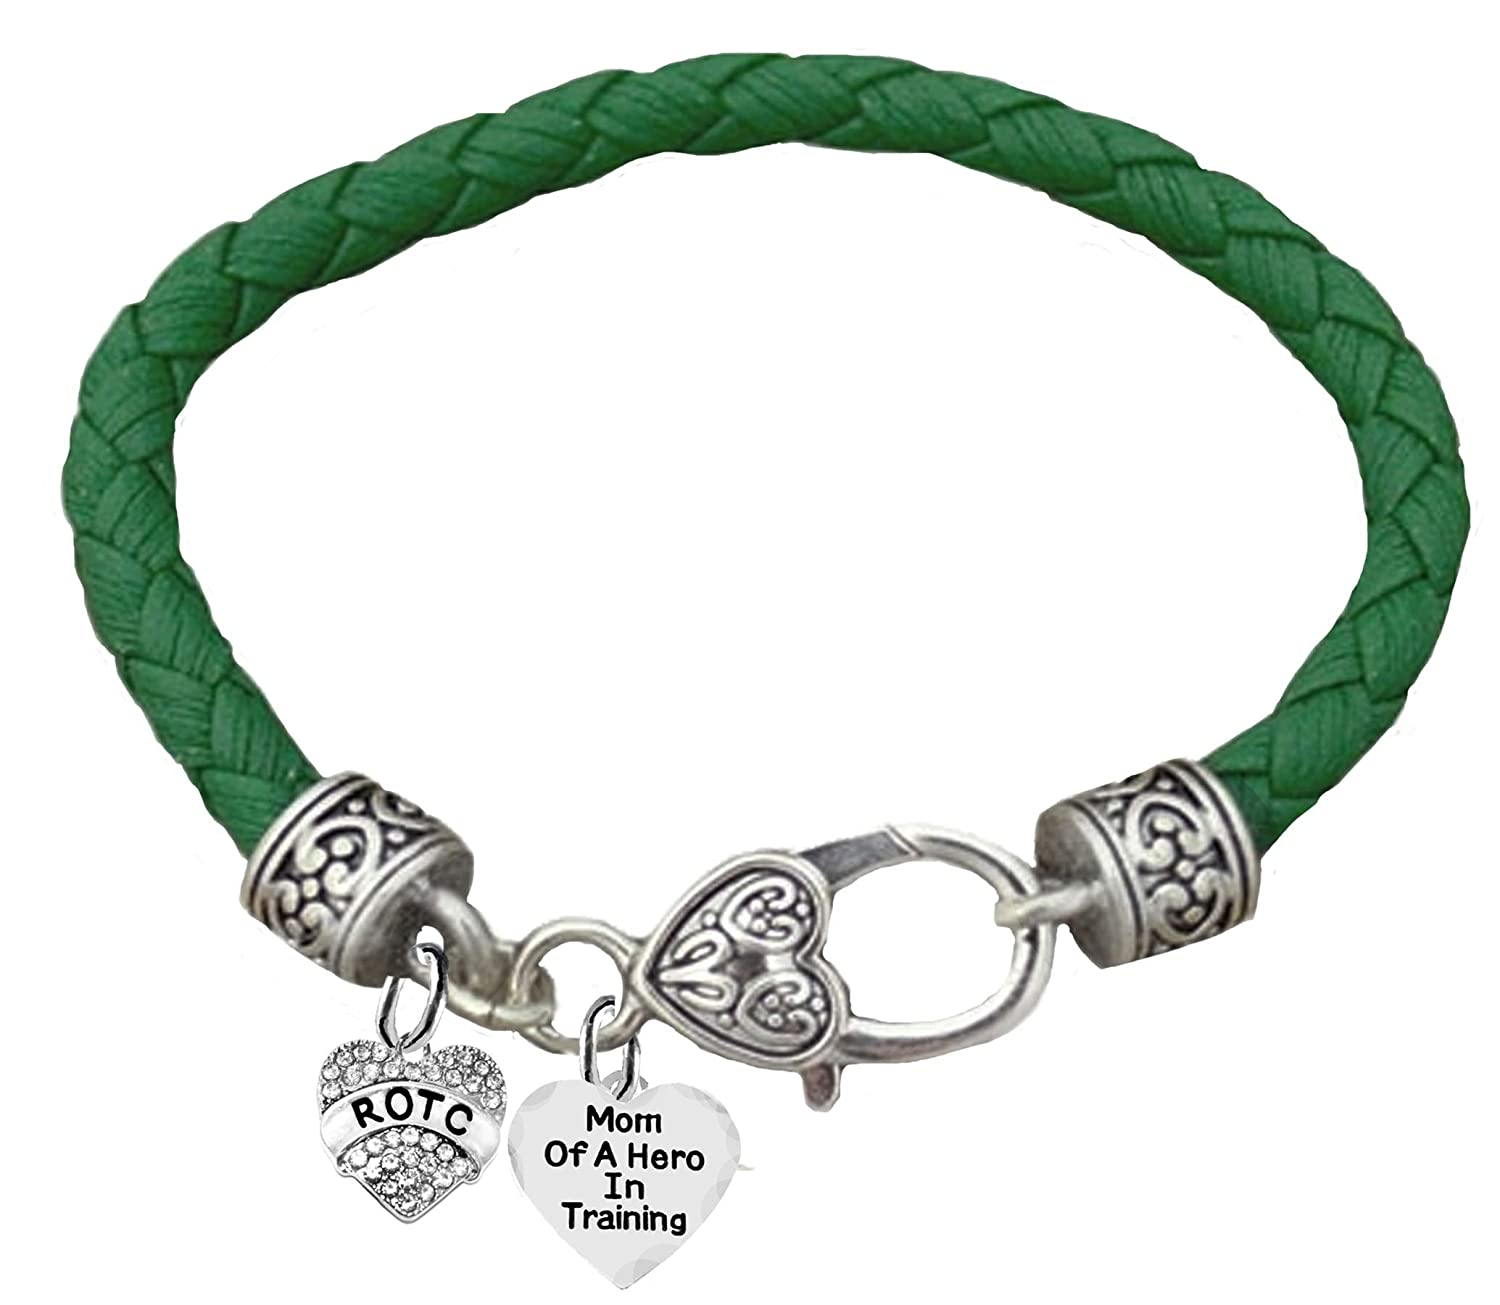 Cardinali Jewelry ROTC Hypoallergenic Safe-Nickel Lead and Cadmium Free Mom of A Hero in Training,Genuine Army Green Leather Bracelet